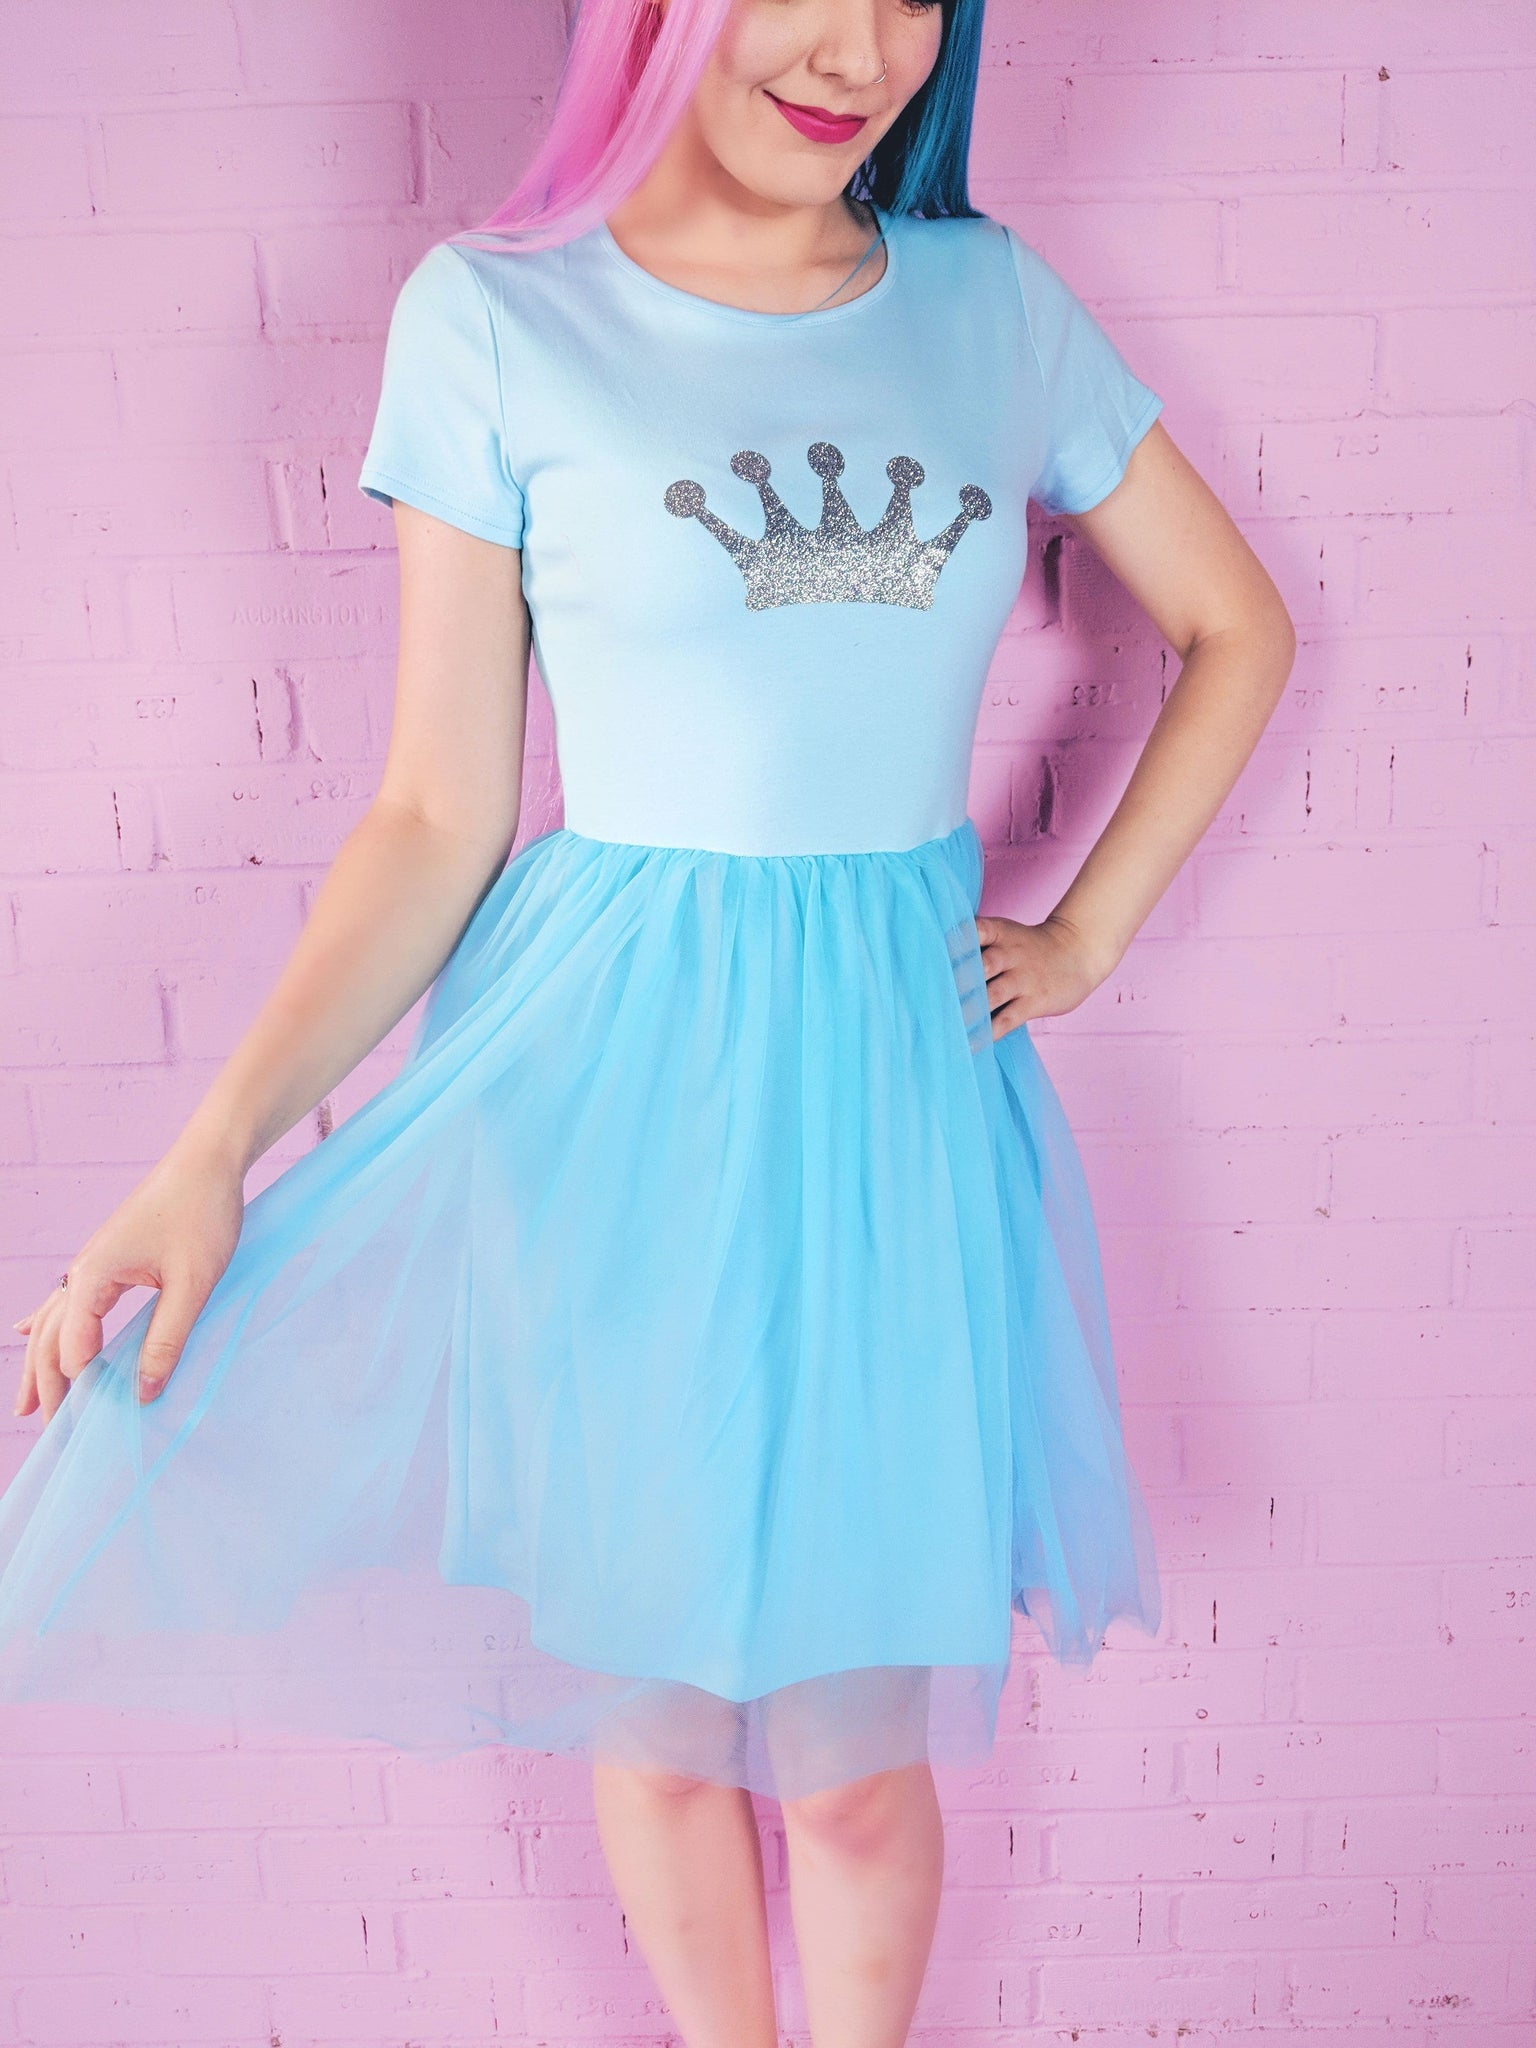 Blue Princess Crown Dress